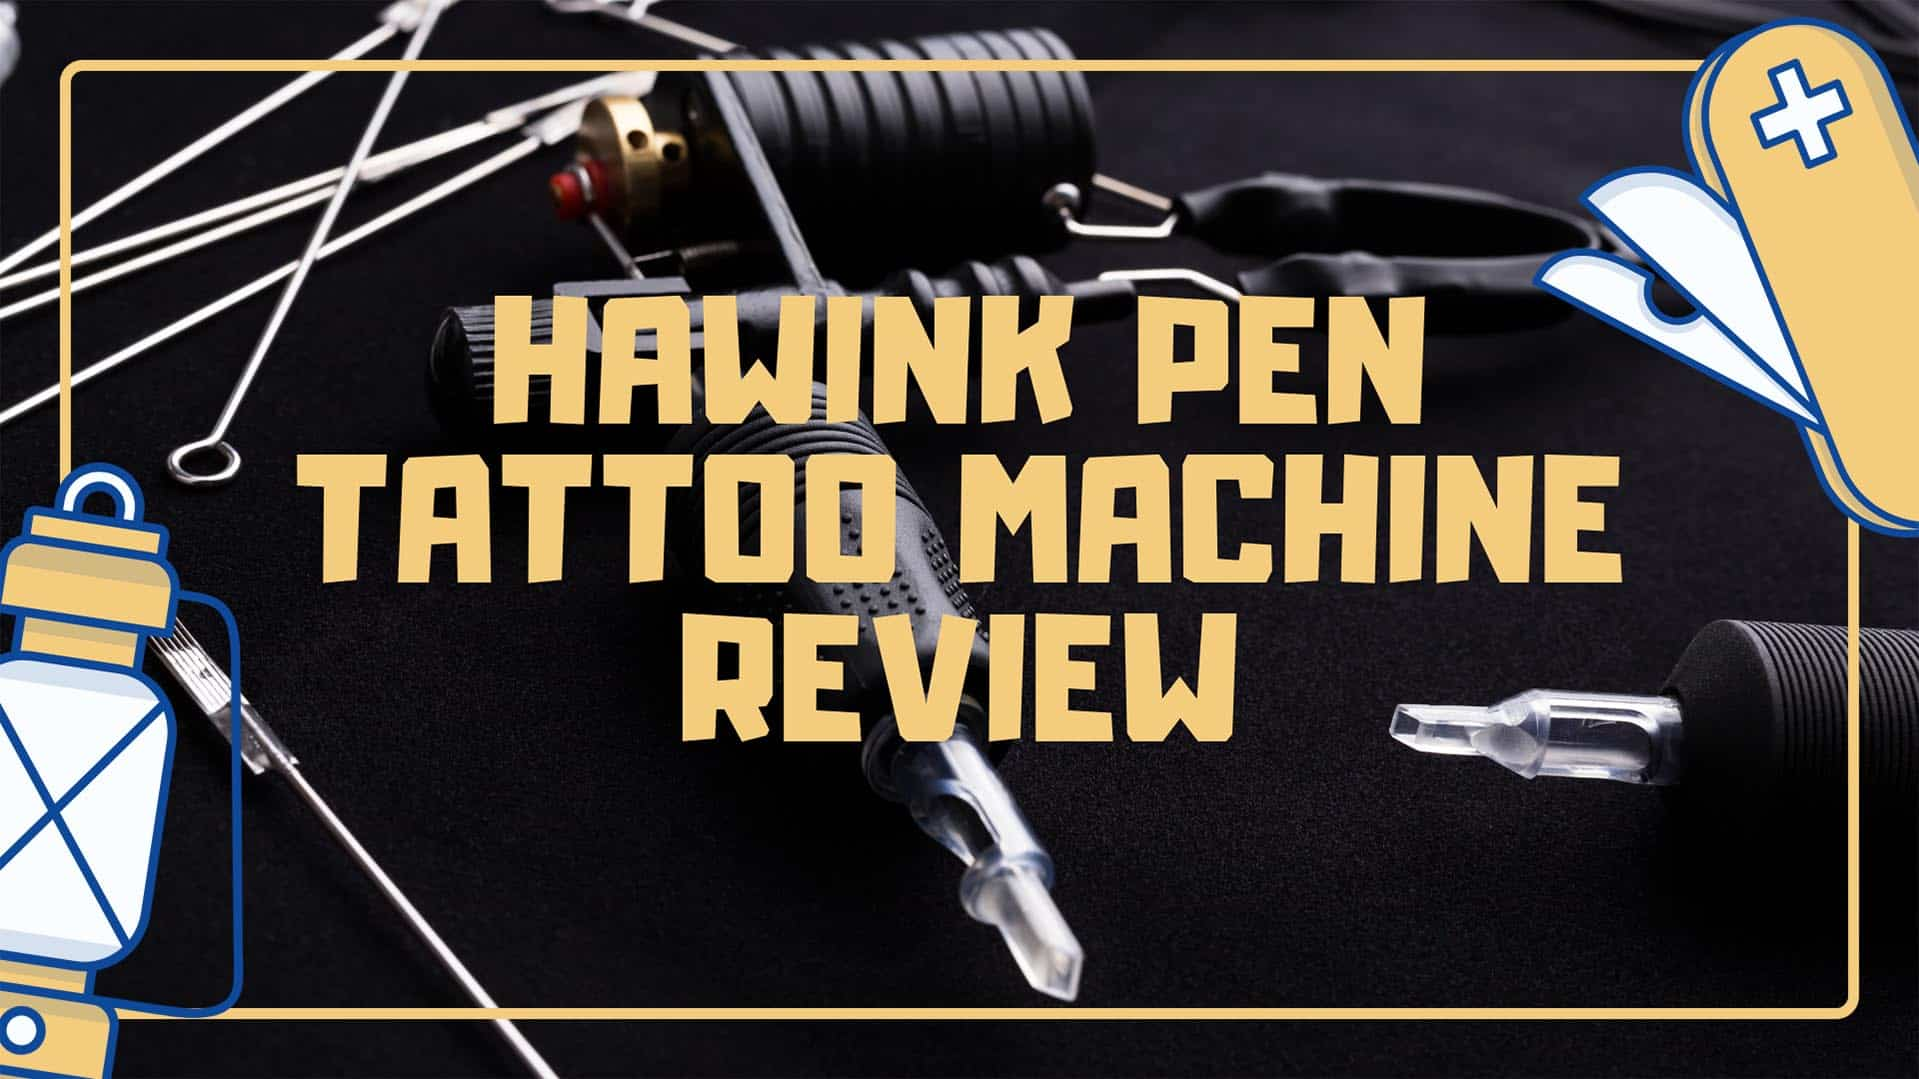 Hawink Rotary Pen Tattoo Machine Review